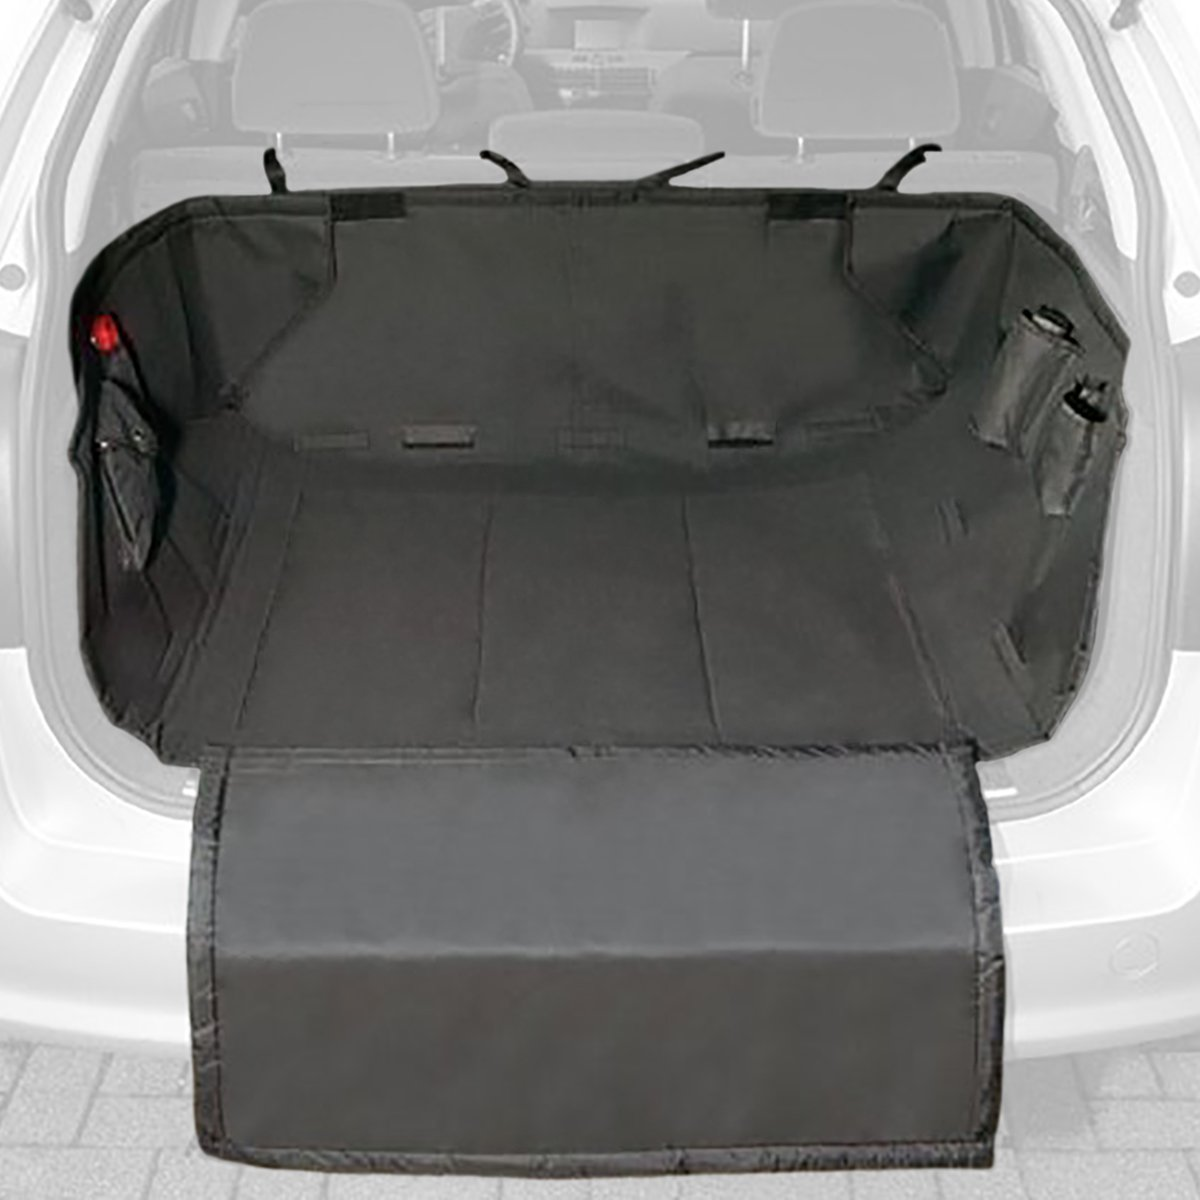 protection de coffre voiture pour transport chien chat. Black Bedroom Furniture Sets. Home Design Ideas